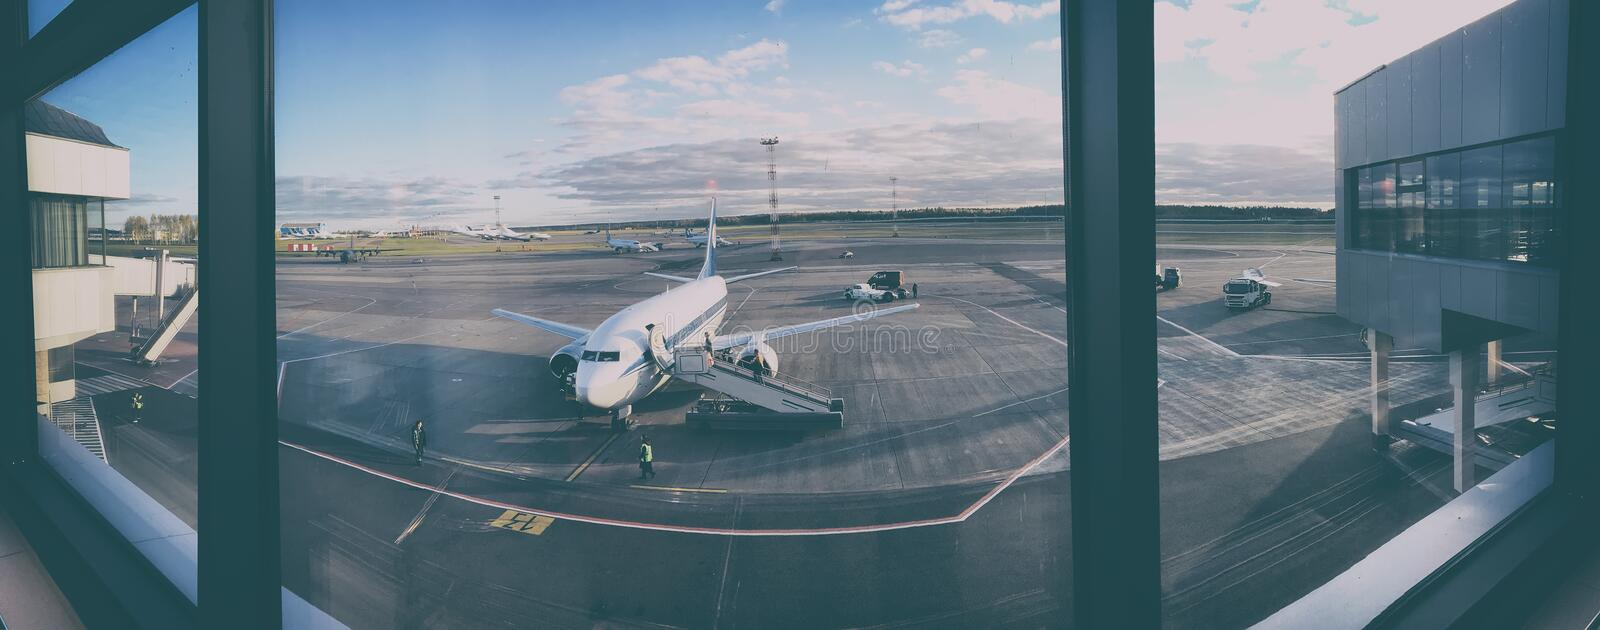 Plane at the airport royalty free stock photo